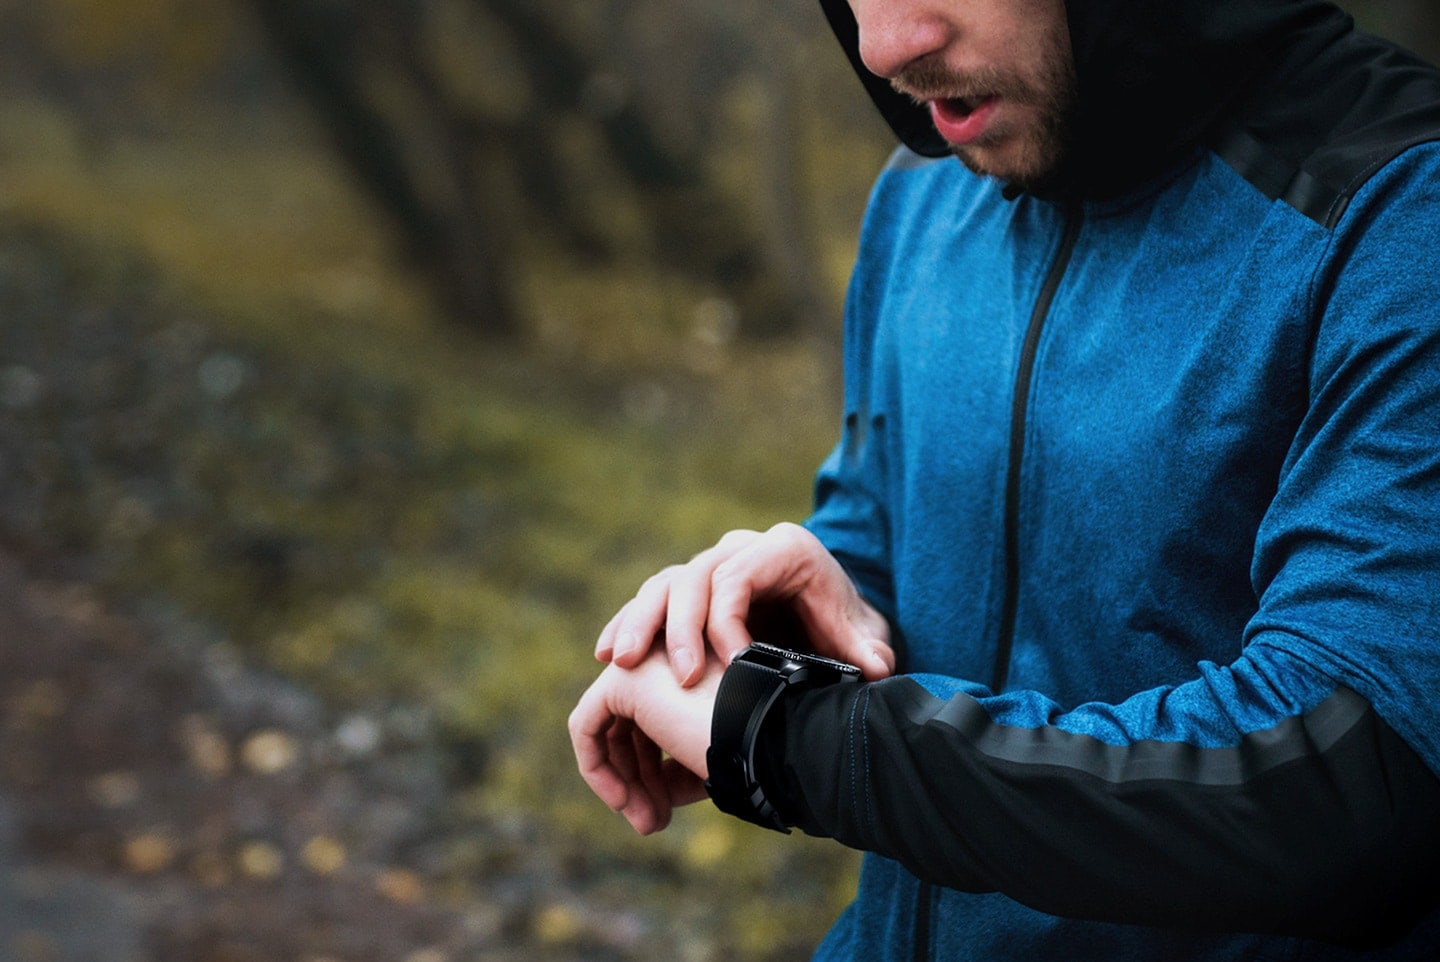 Man outdoors speaking to Gear S3 on wrist